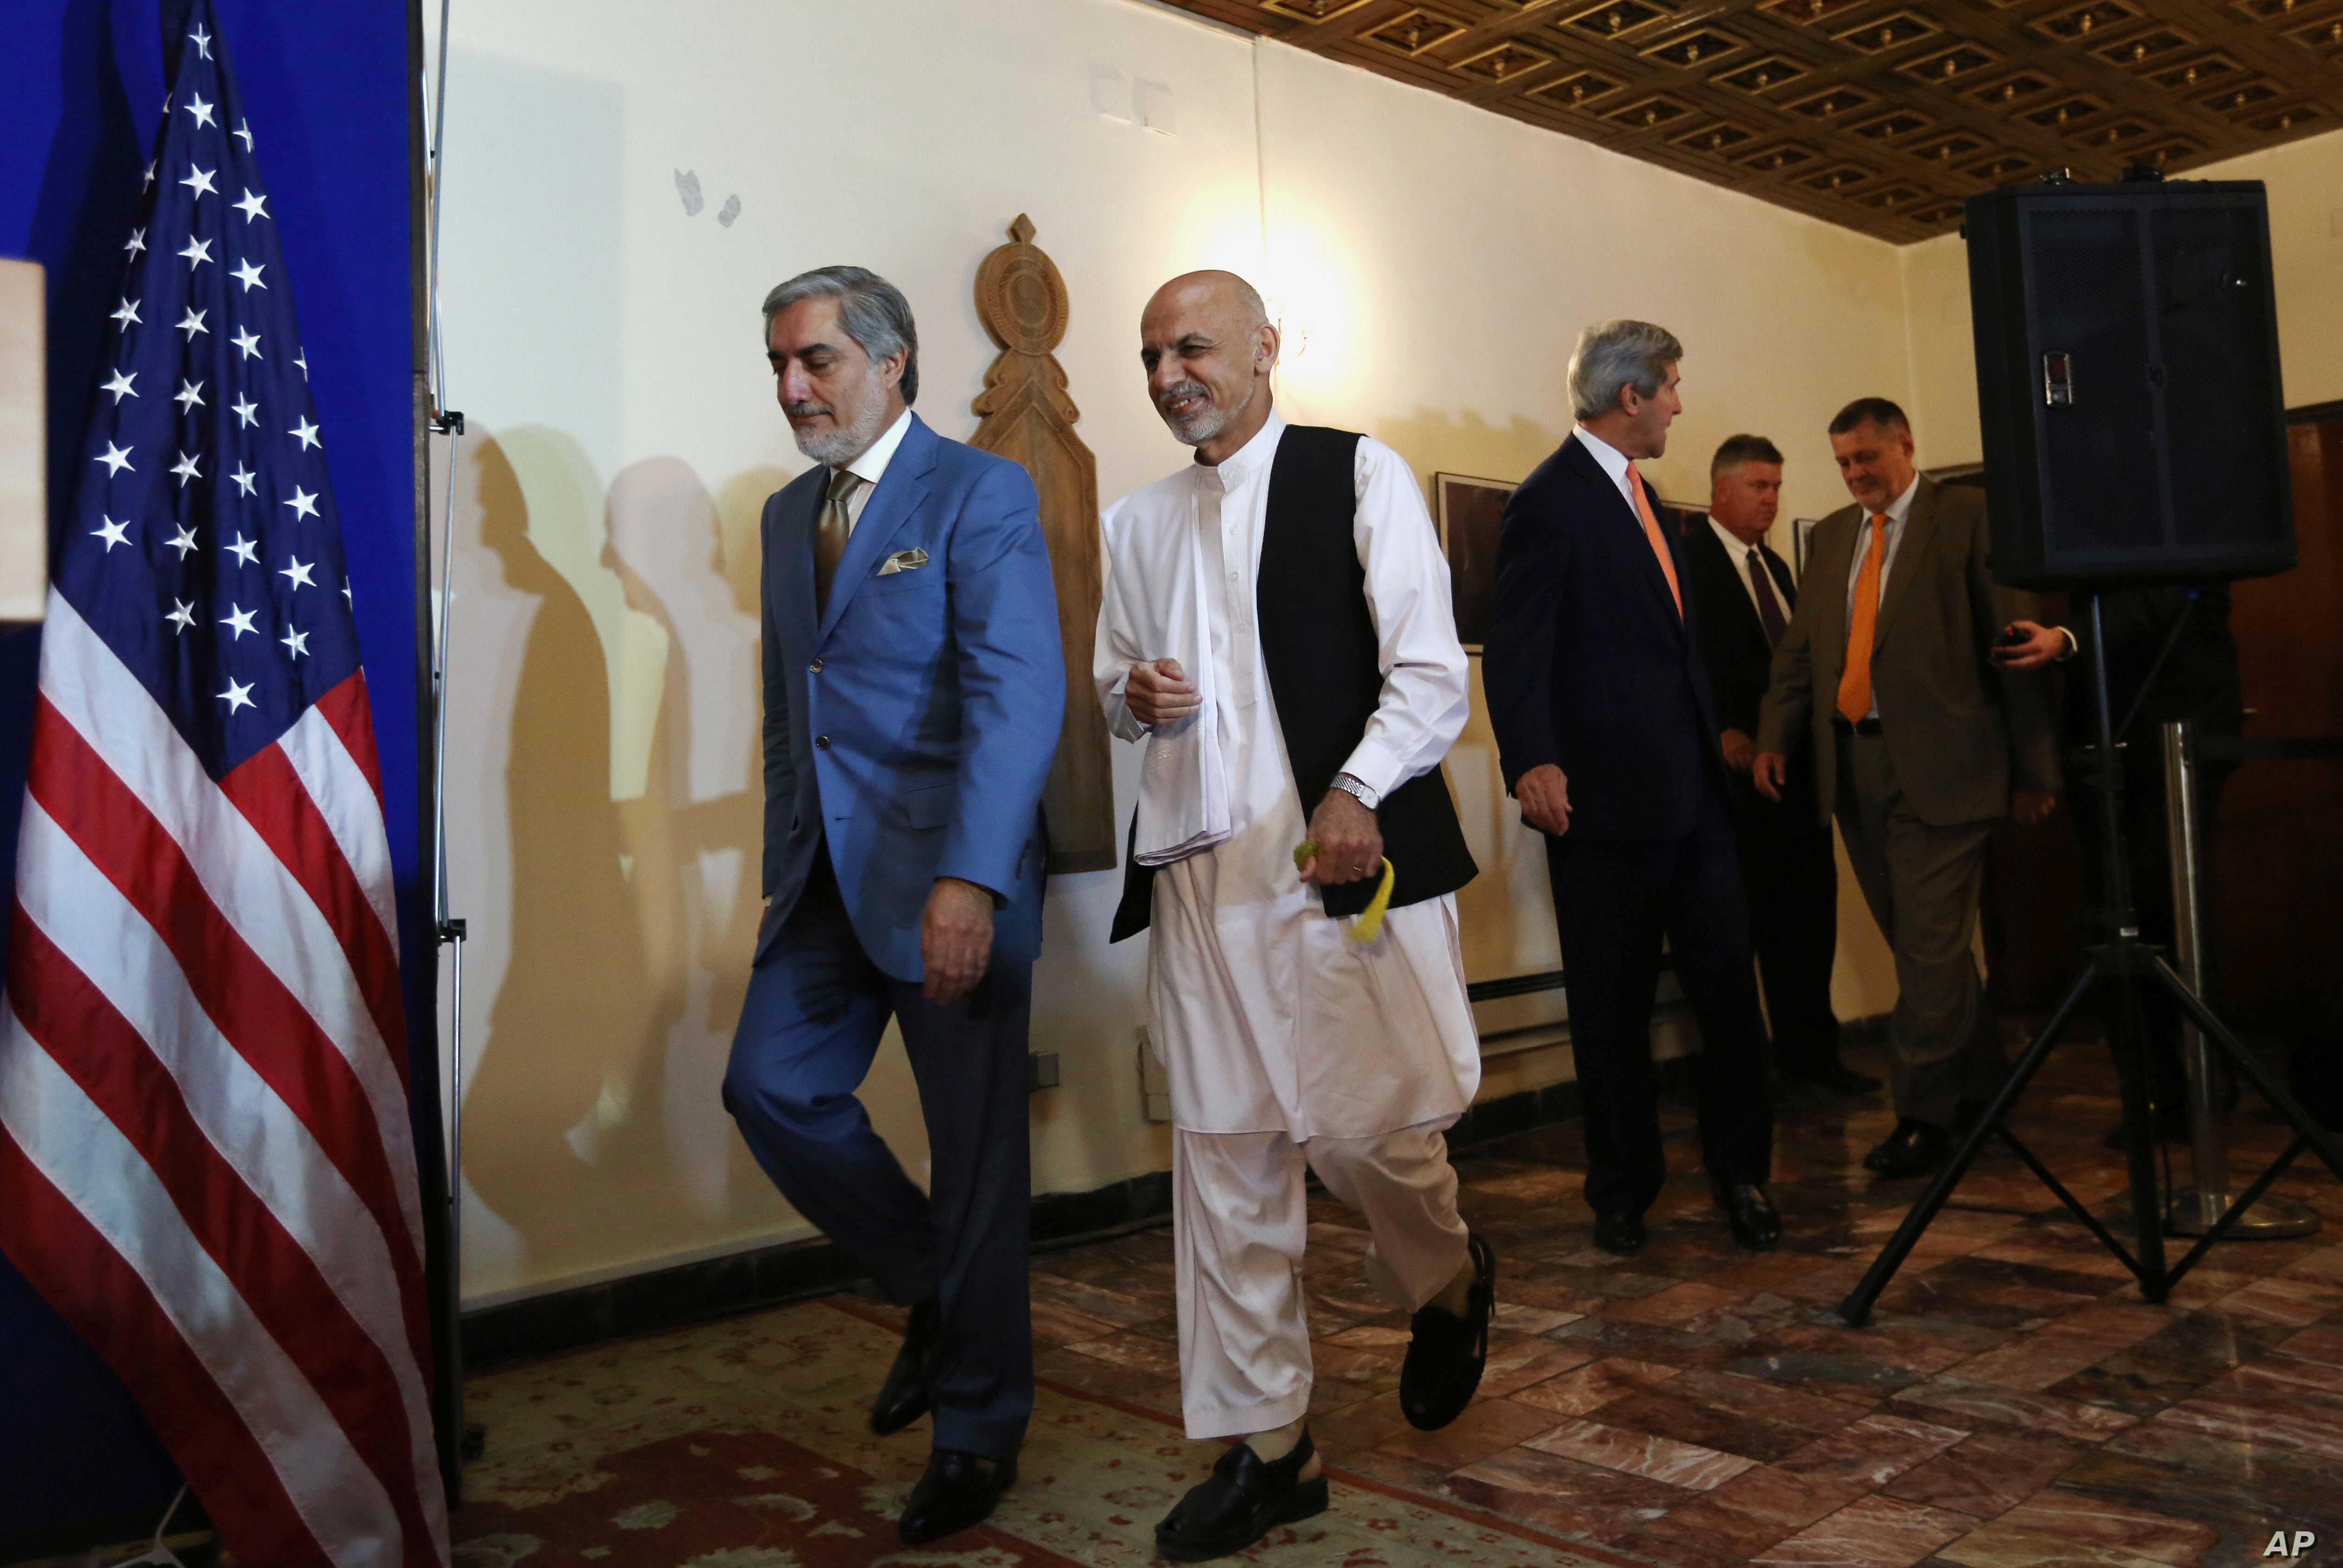 Afghan presidential candidates Abdullah Abdullah, from left, and Ashraf Ghani Ahmadzai and U.S. Secretary of State John Kerry arrive at a joint press conference in Kabul, Afghanistan, Friday, Aug. 8, 2014.